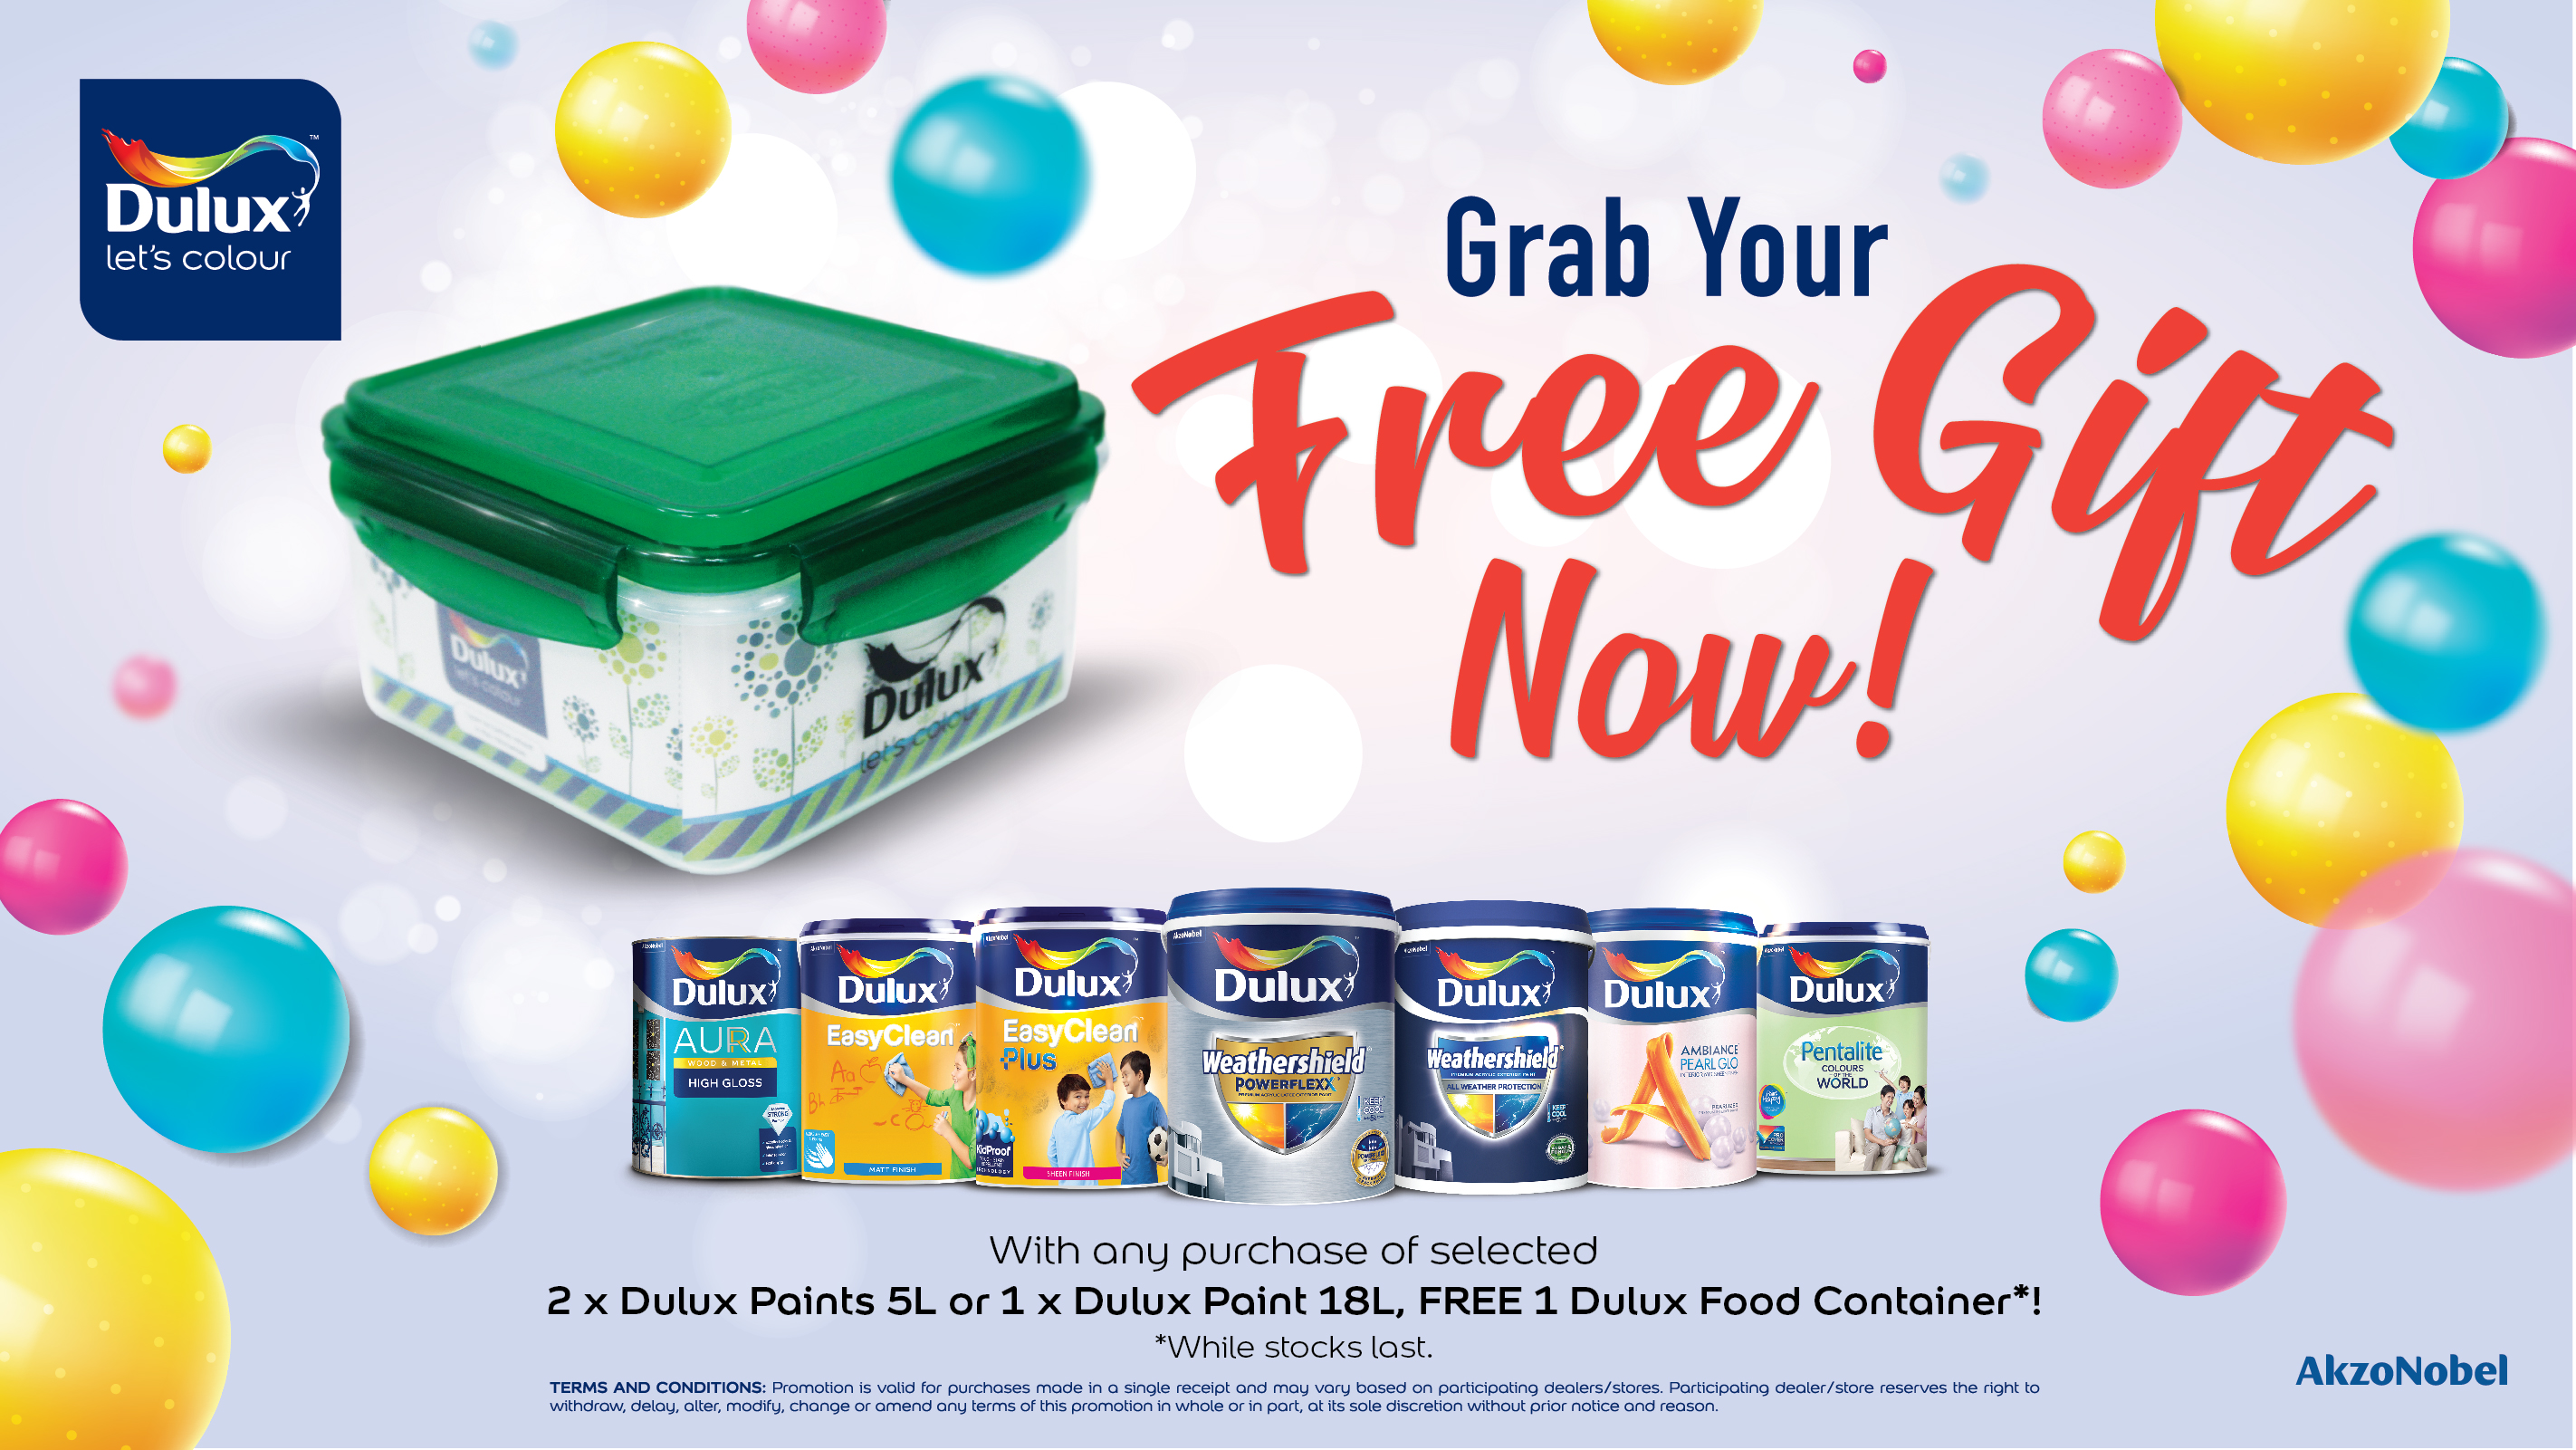 Get a free gift when you purchase selected Dulux Paints!